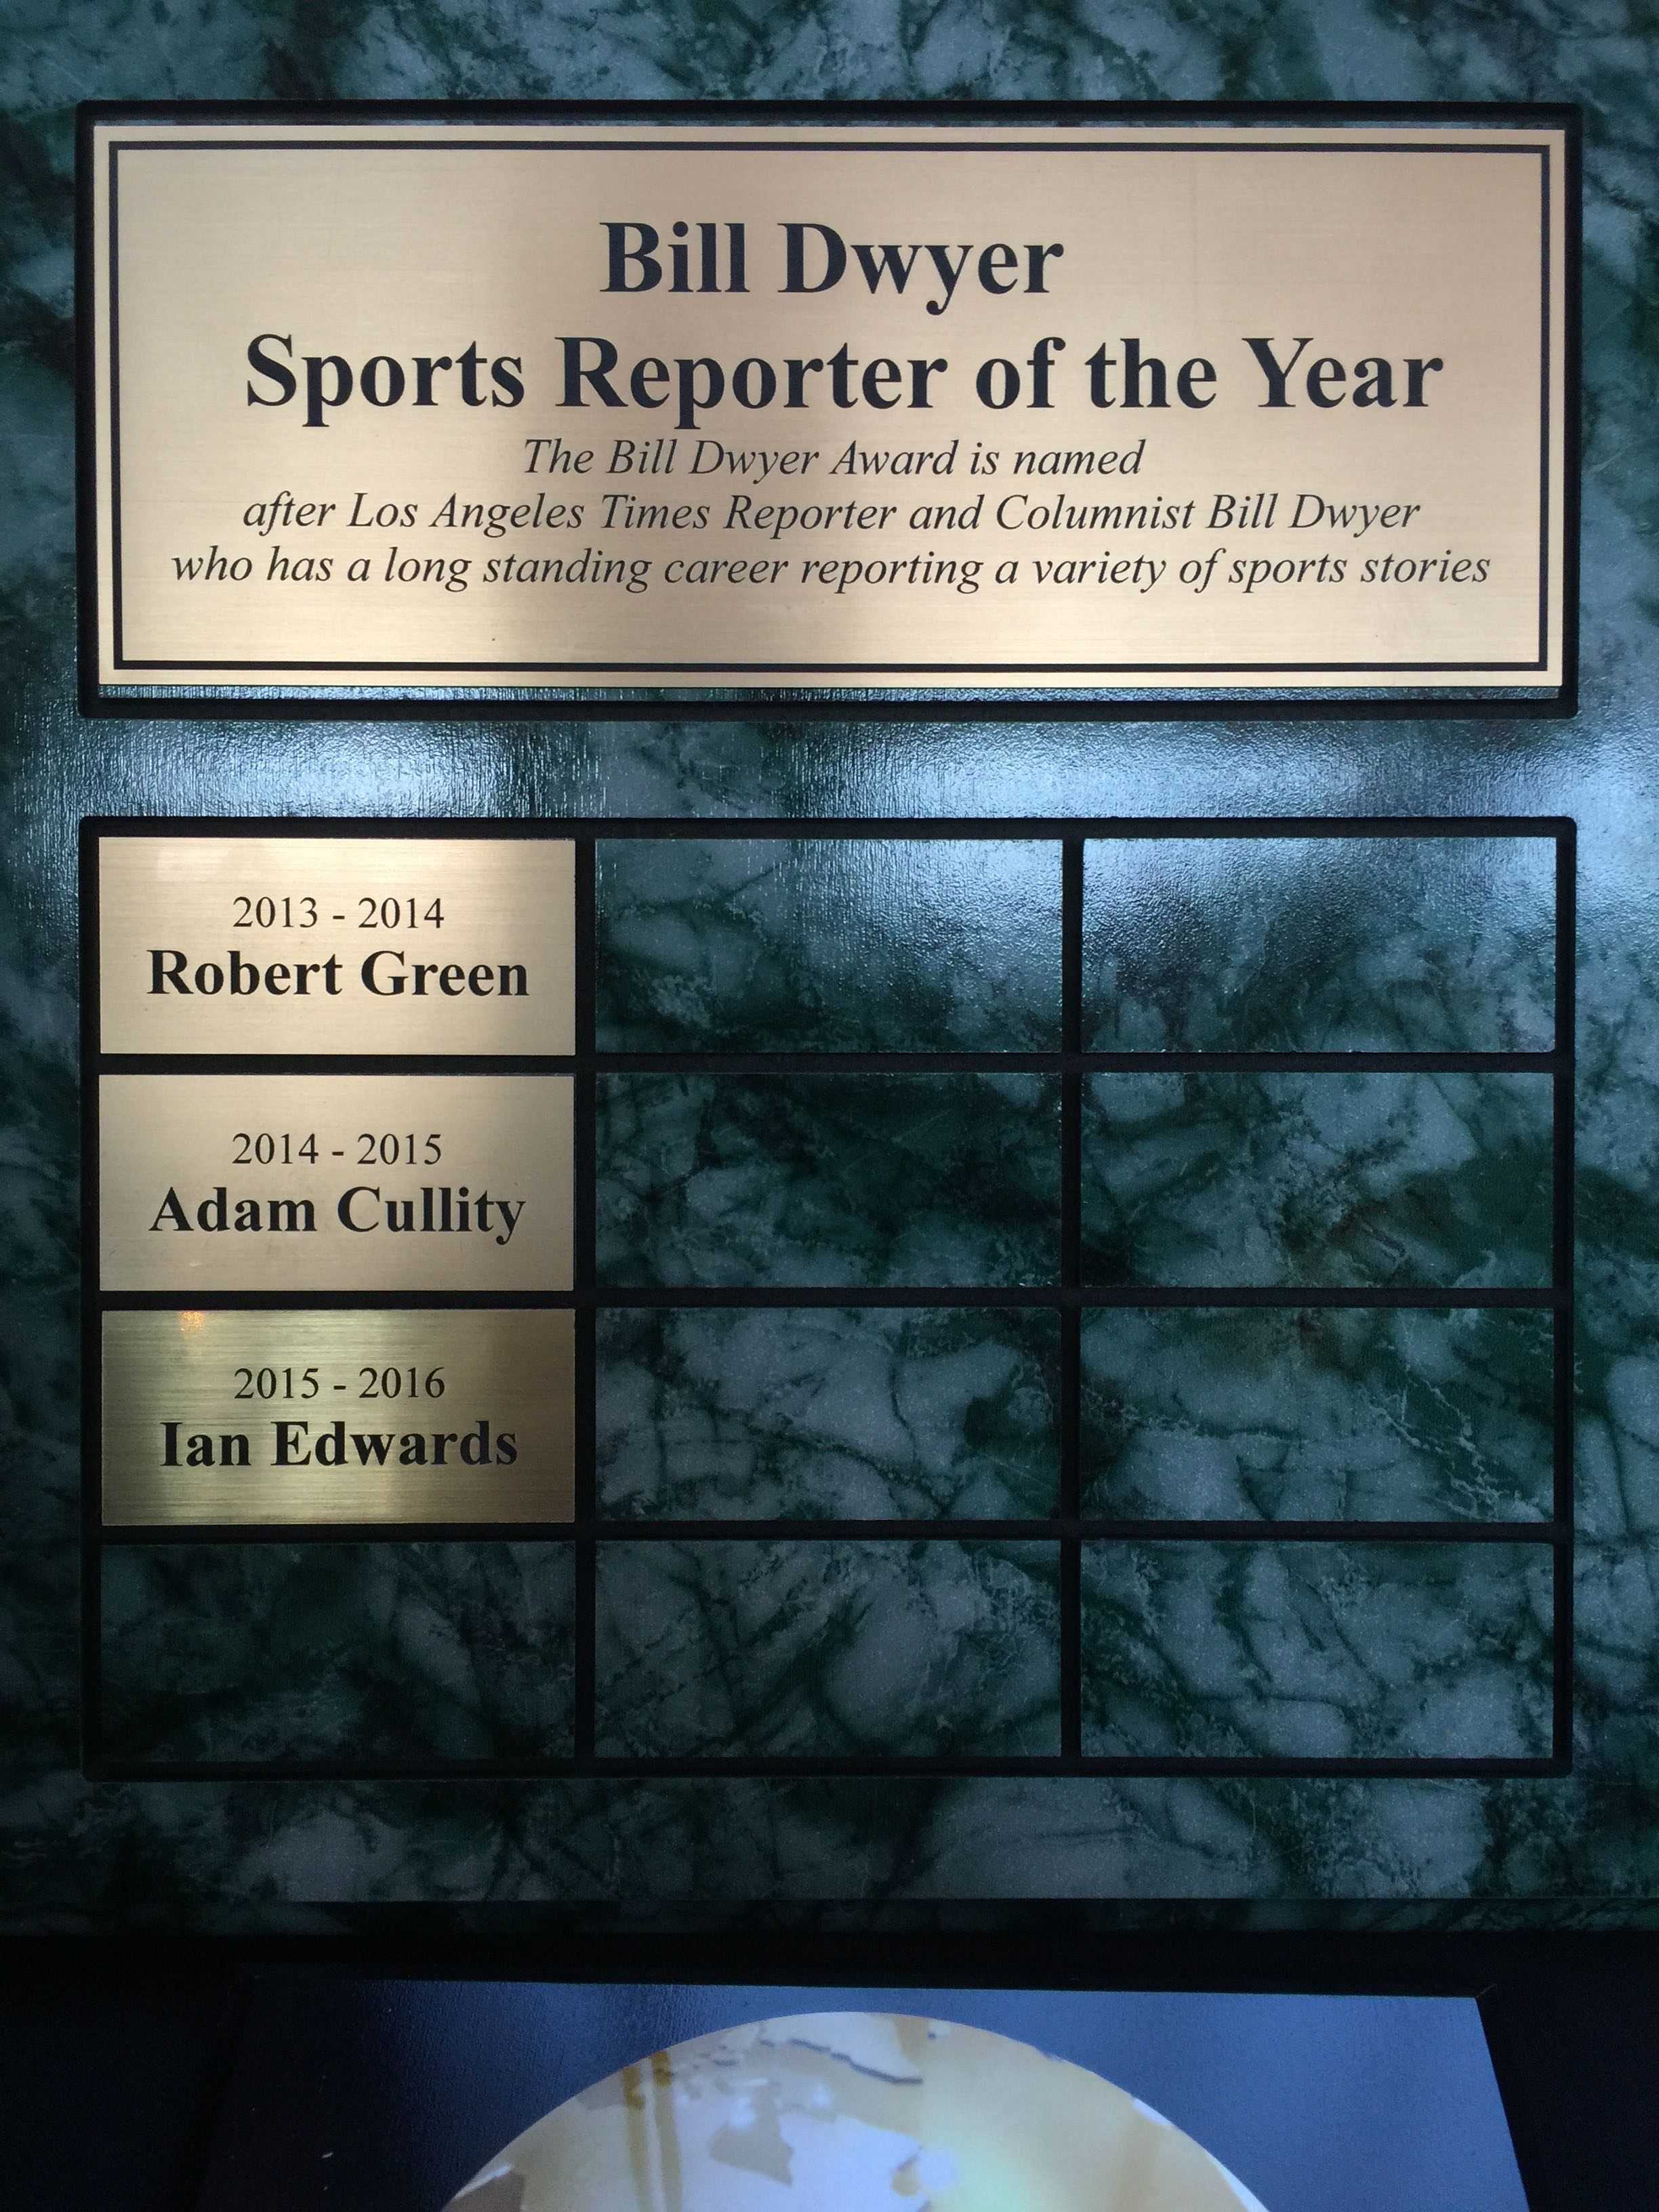 Our+Sports+Reporter+of+the+Year+is+honored+by+Mr.+Bill+Dweyer+himself.